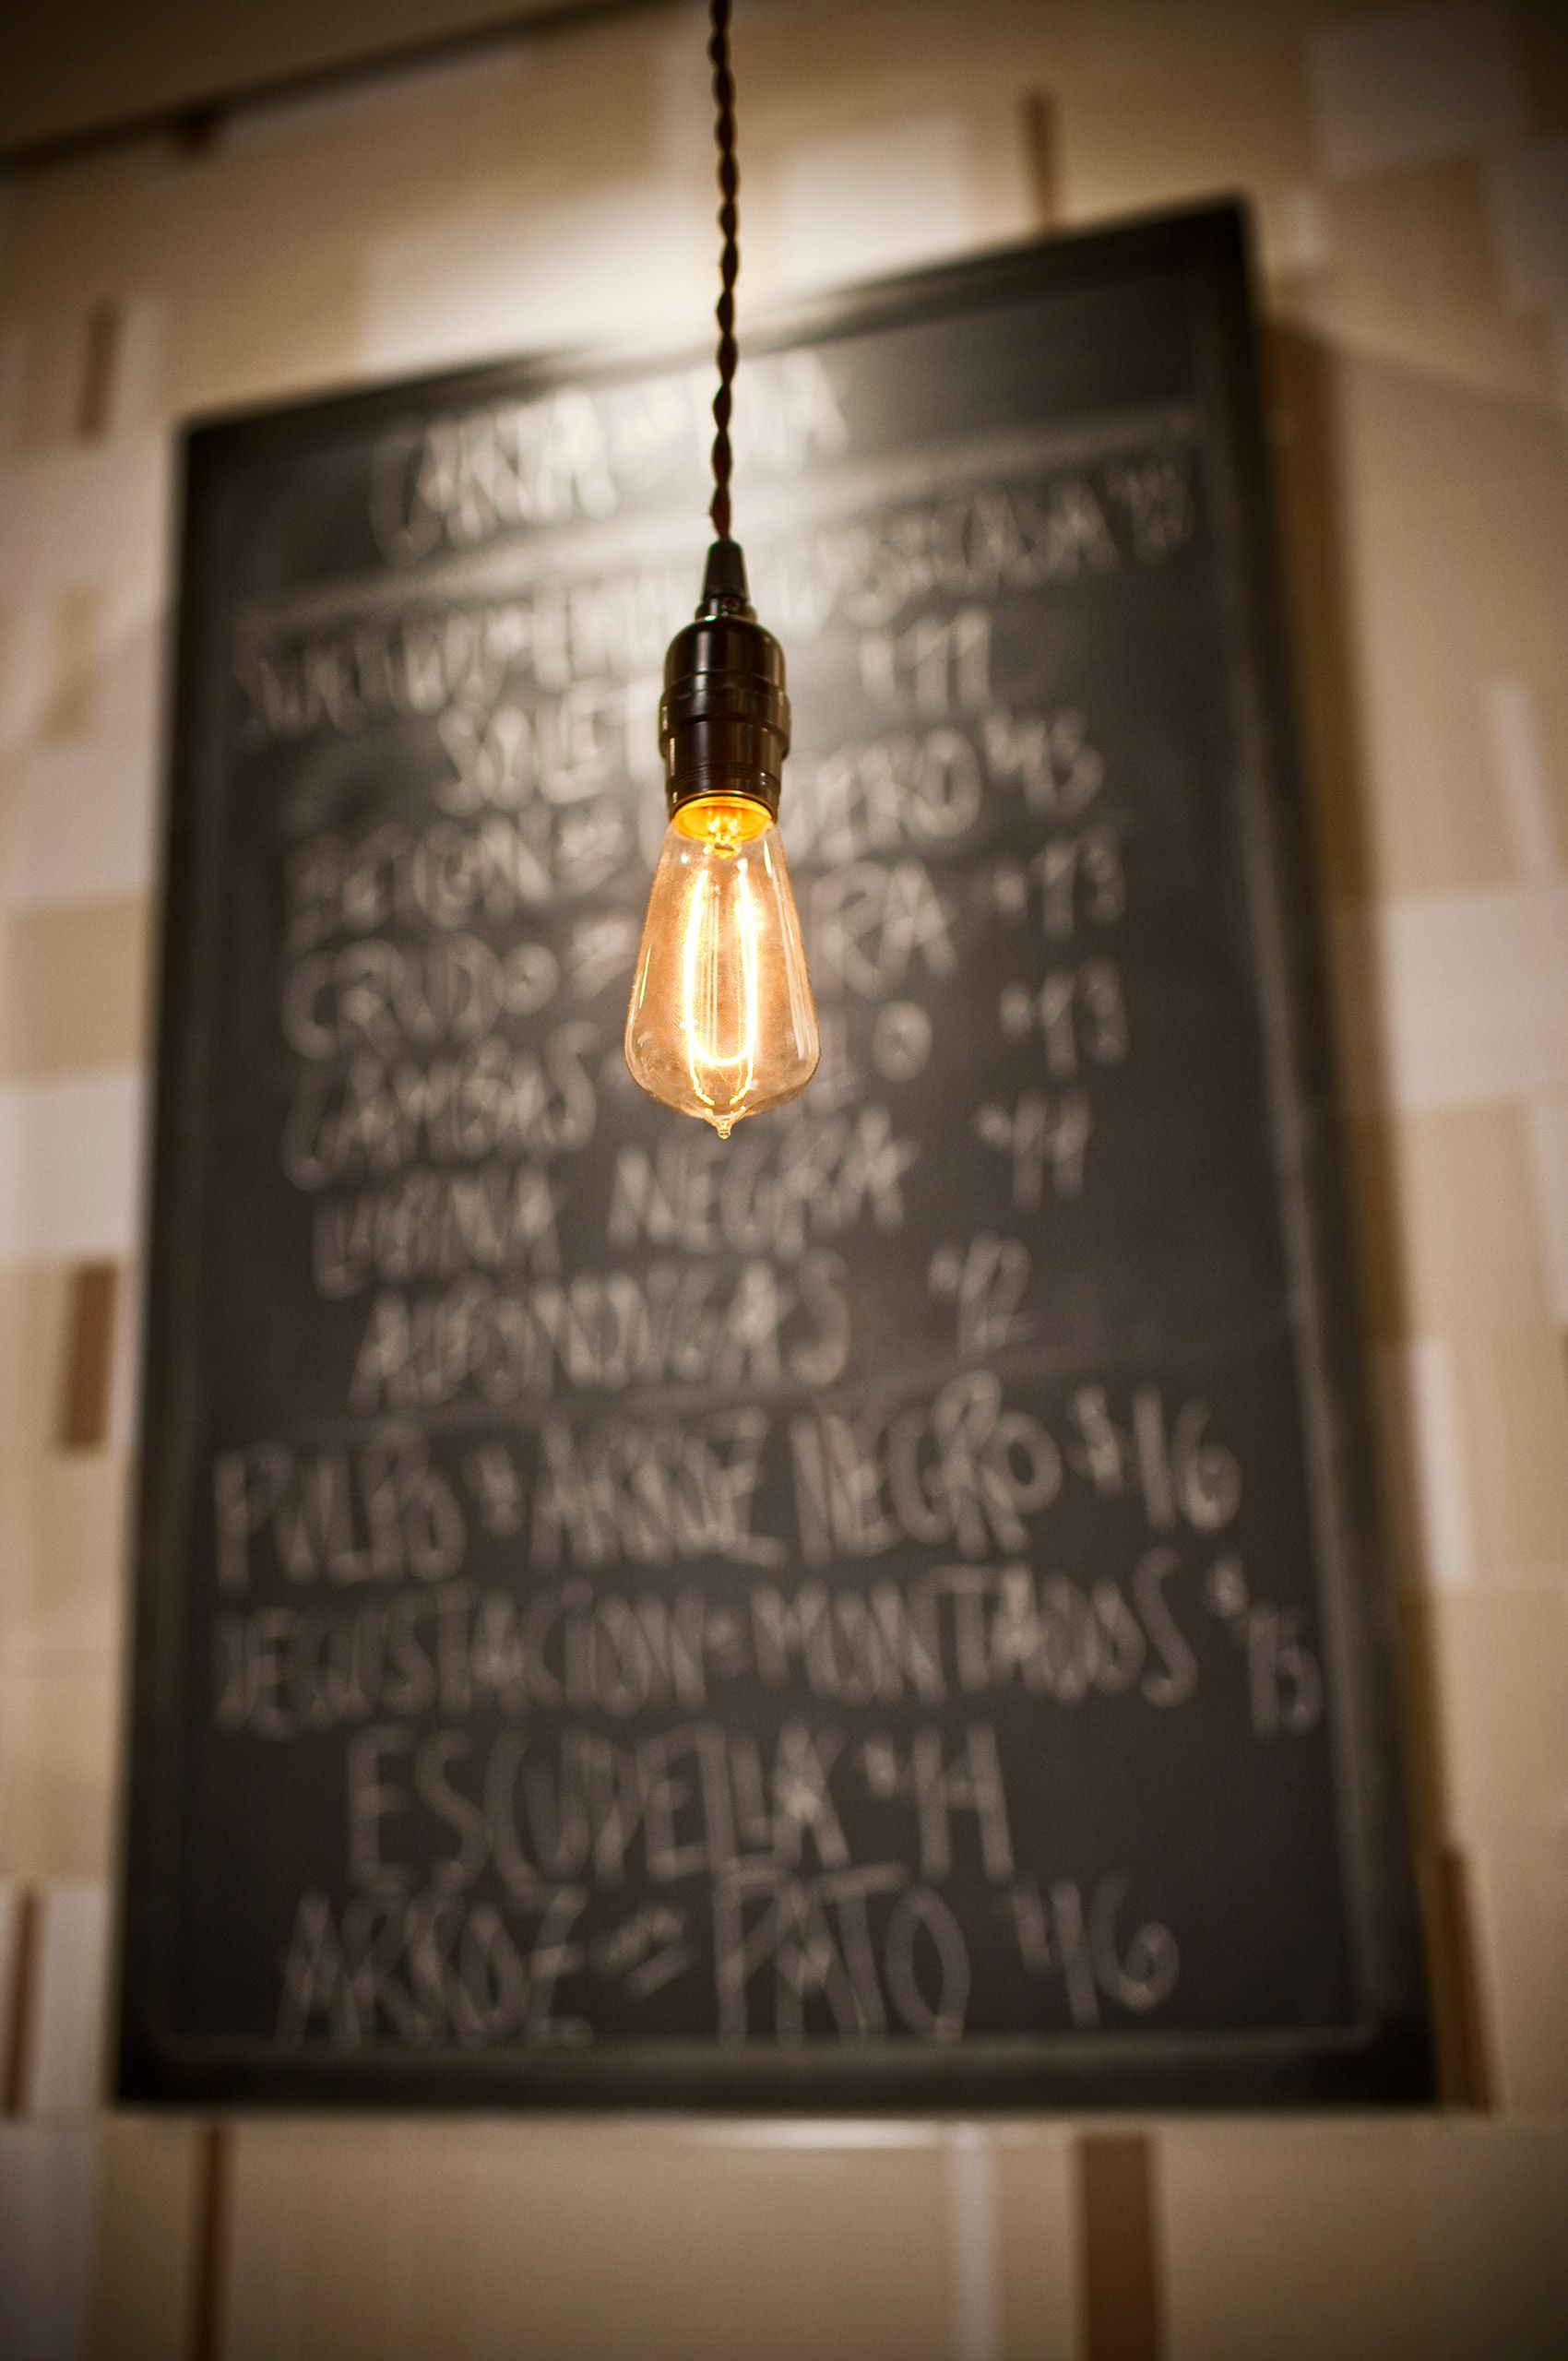 Blackboard-and-bulb-HenrikOlundPhotography.jpg